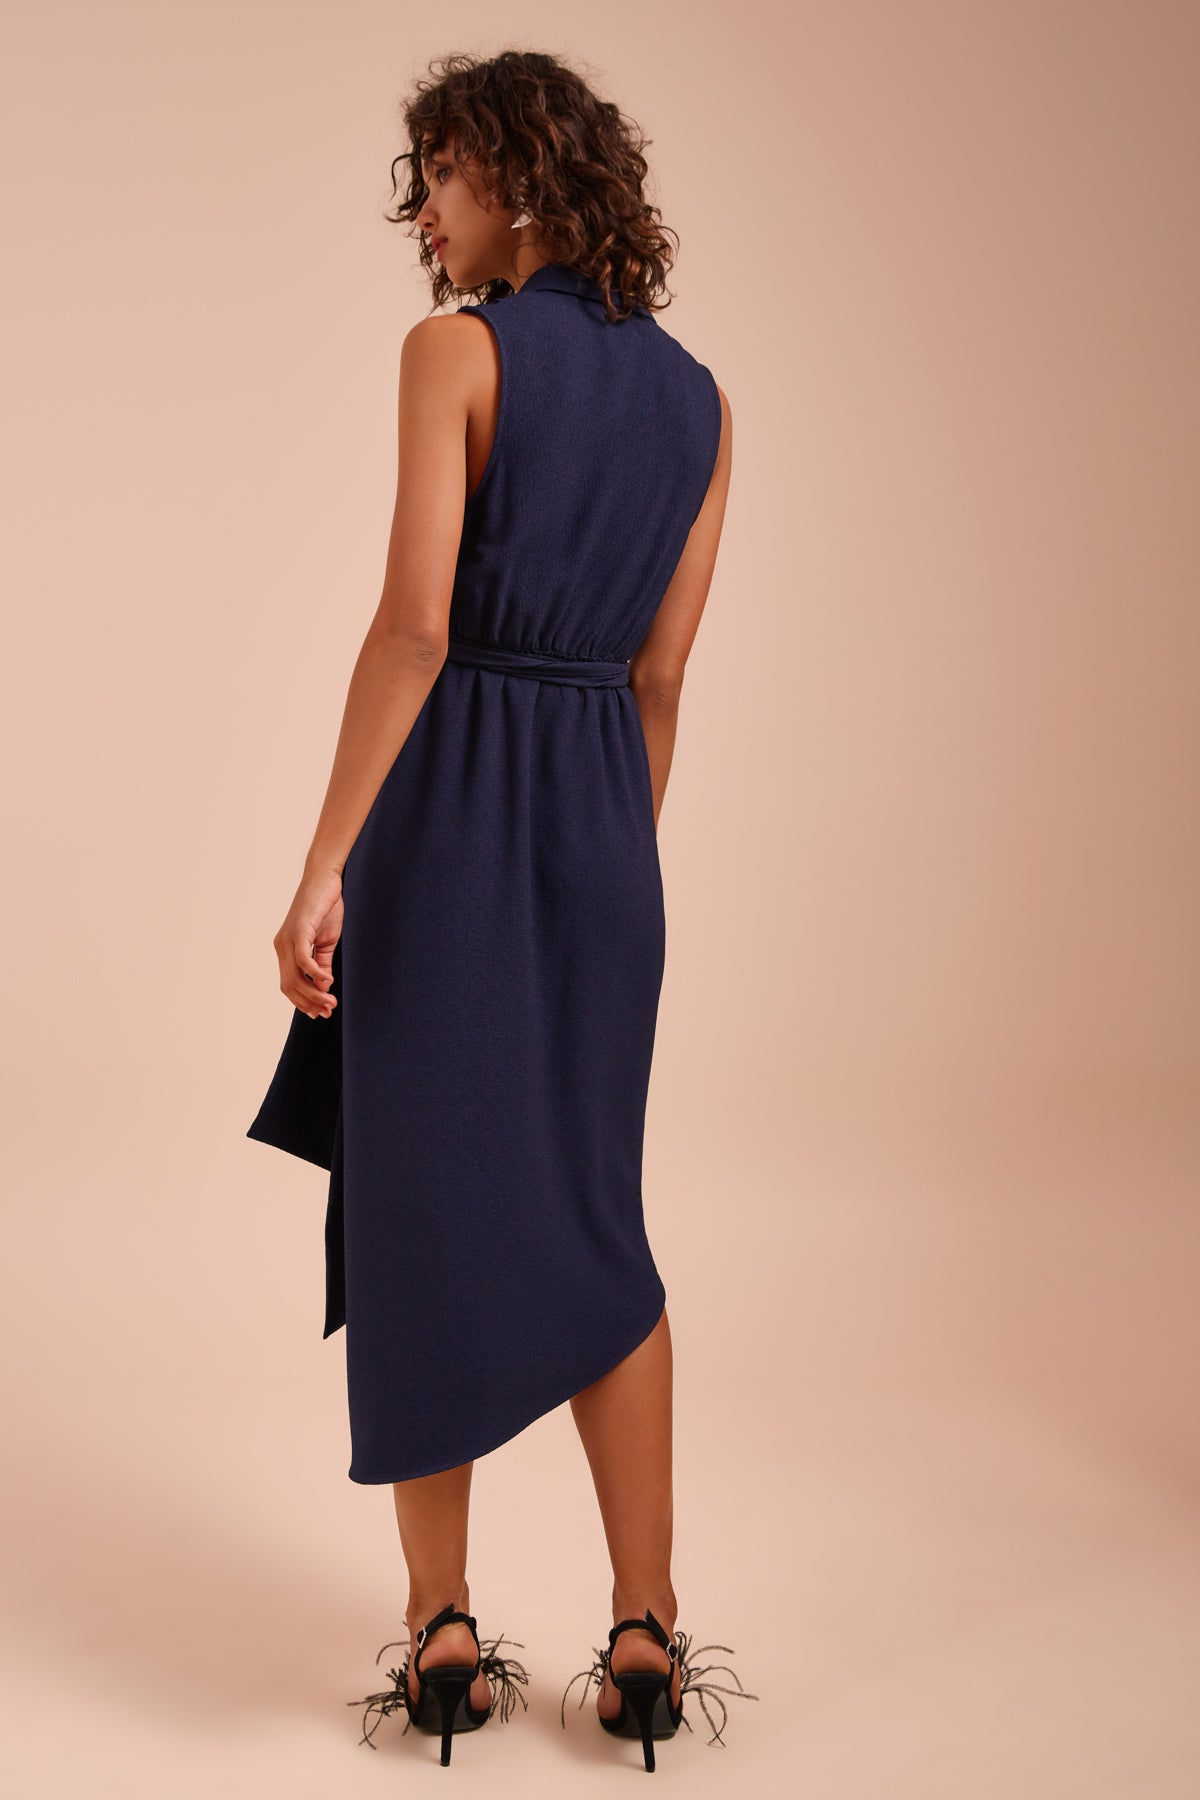 ENTICE SHORT SLEEVE MIDI DRESS navy